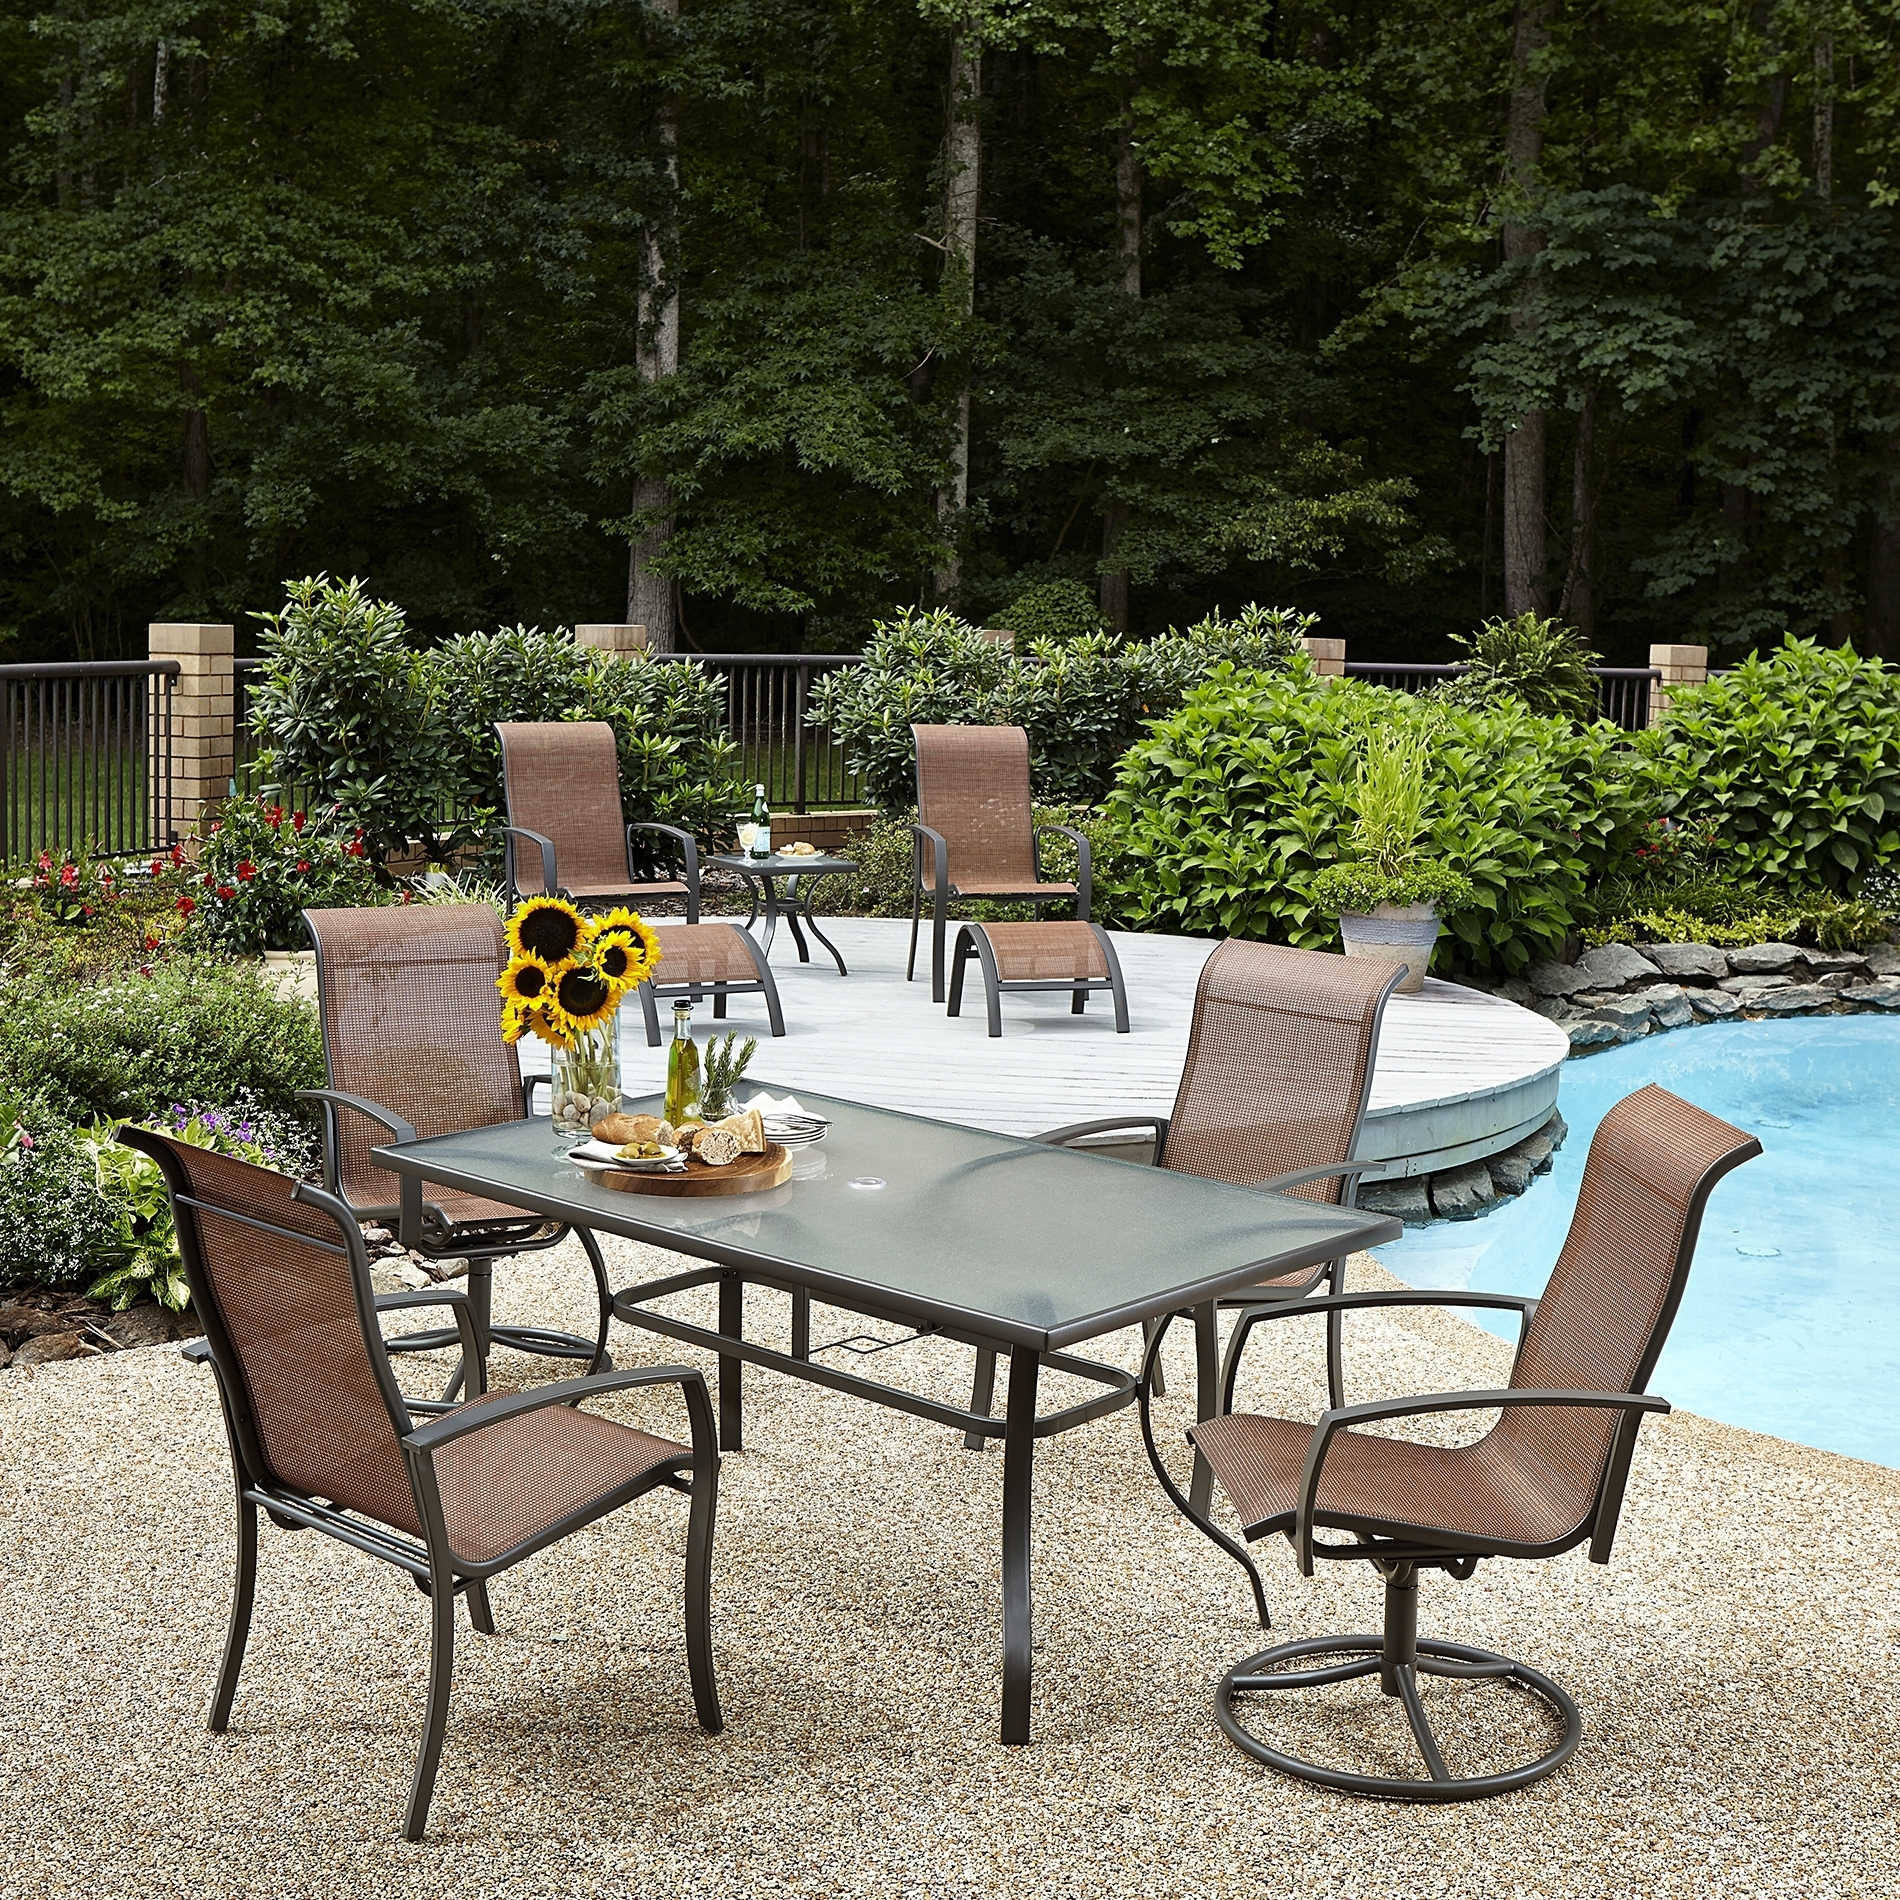 Martha Stewart Conversation Patio Sets Regarding Recent Patio : Imposing Martha Stewart Patio Furniture Pictures Ideas (View 6 of 15)